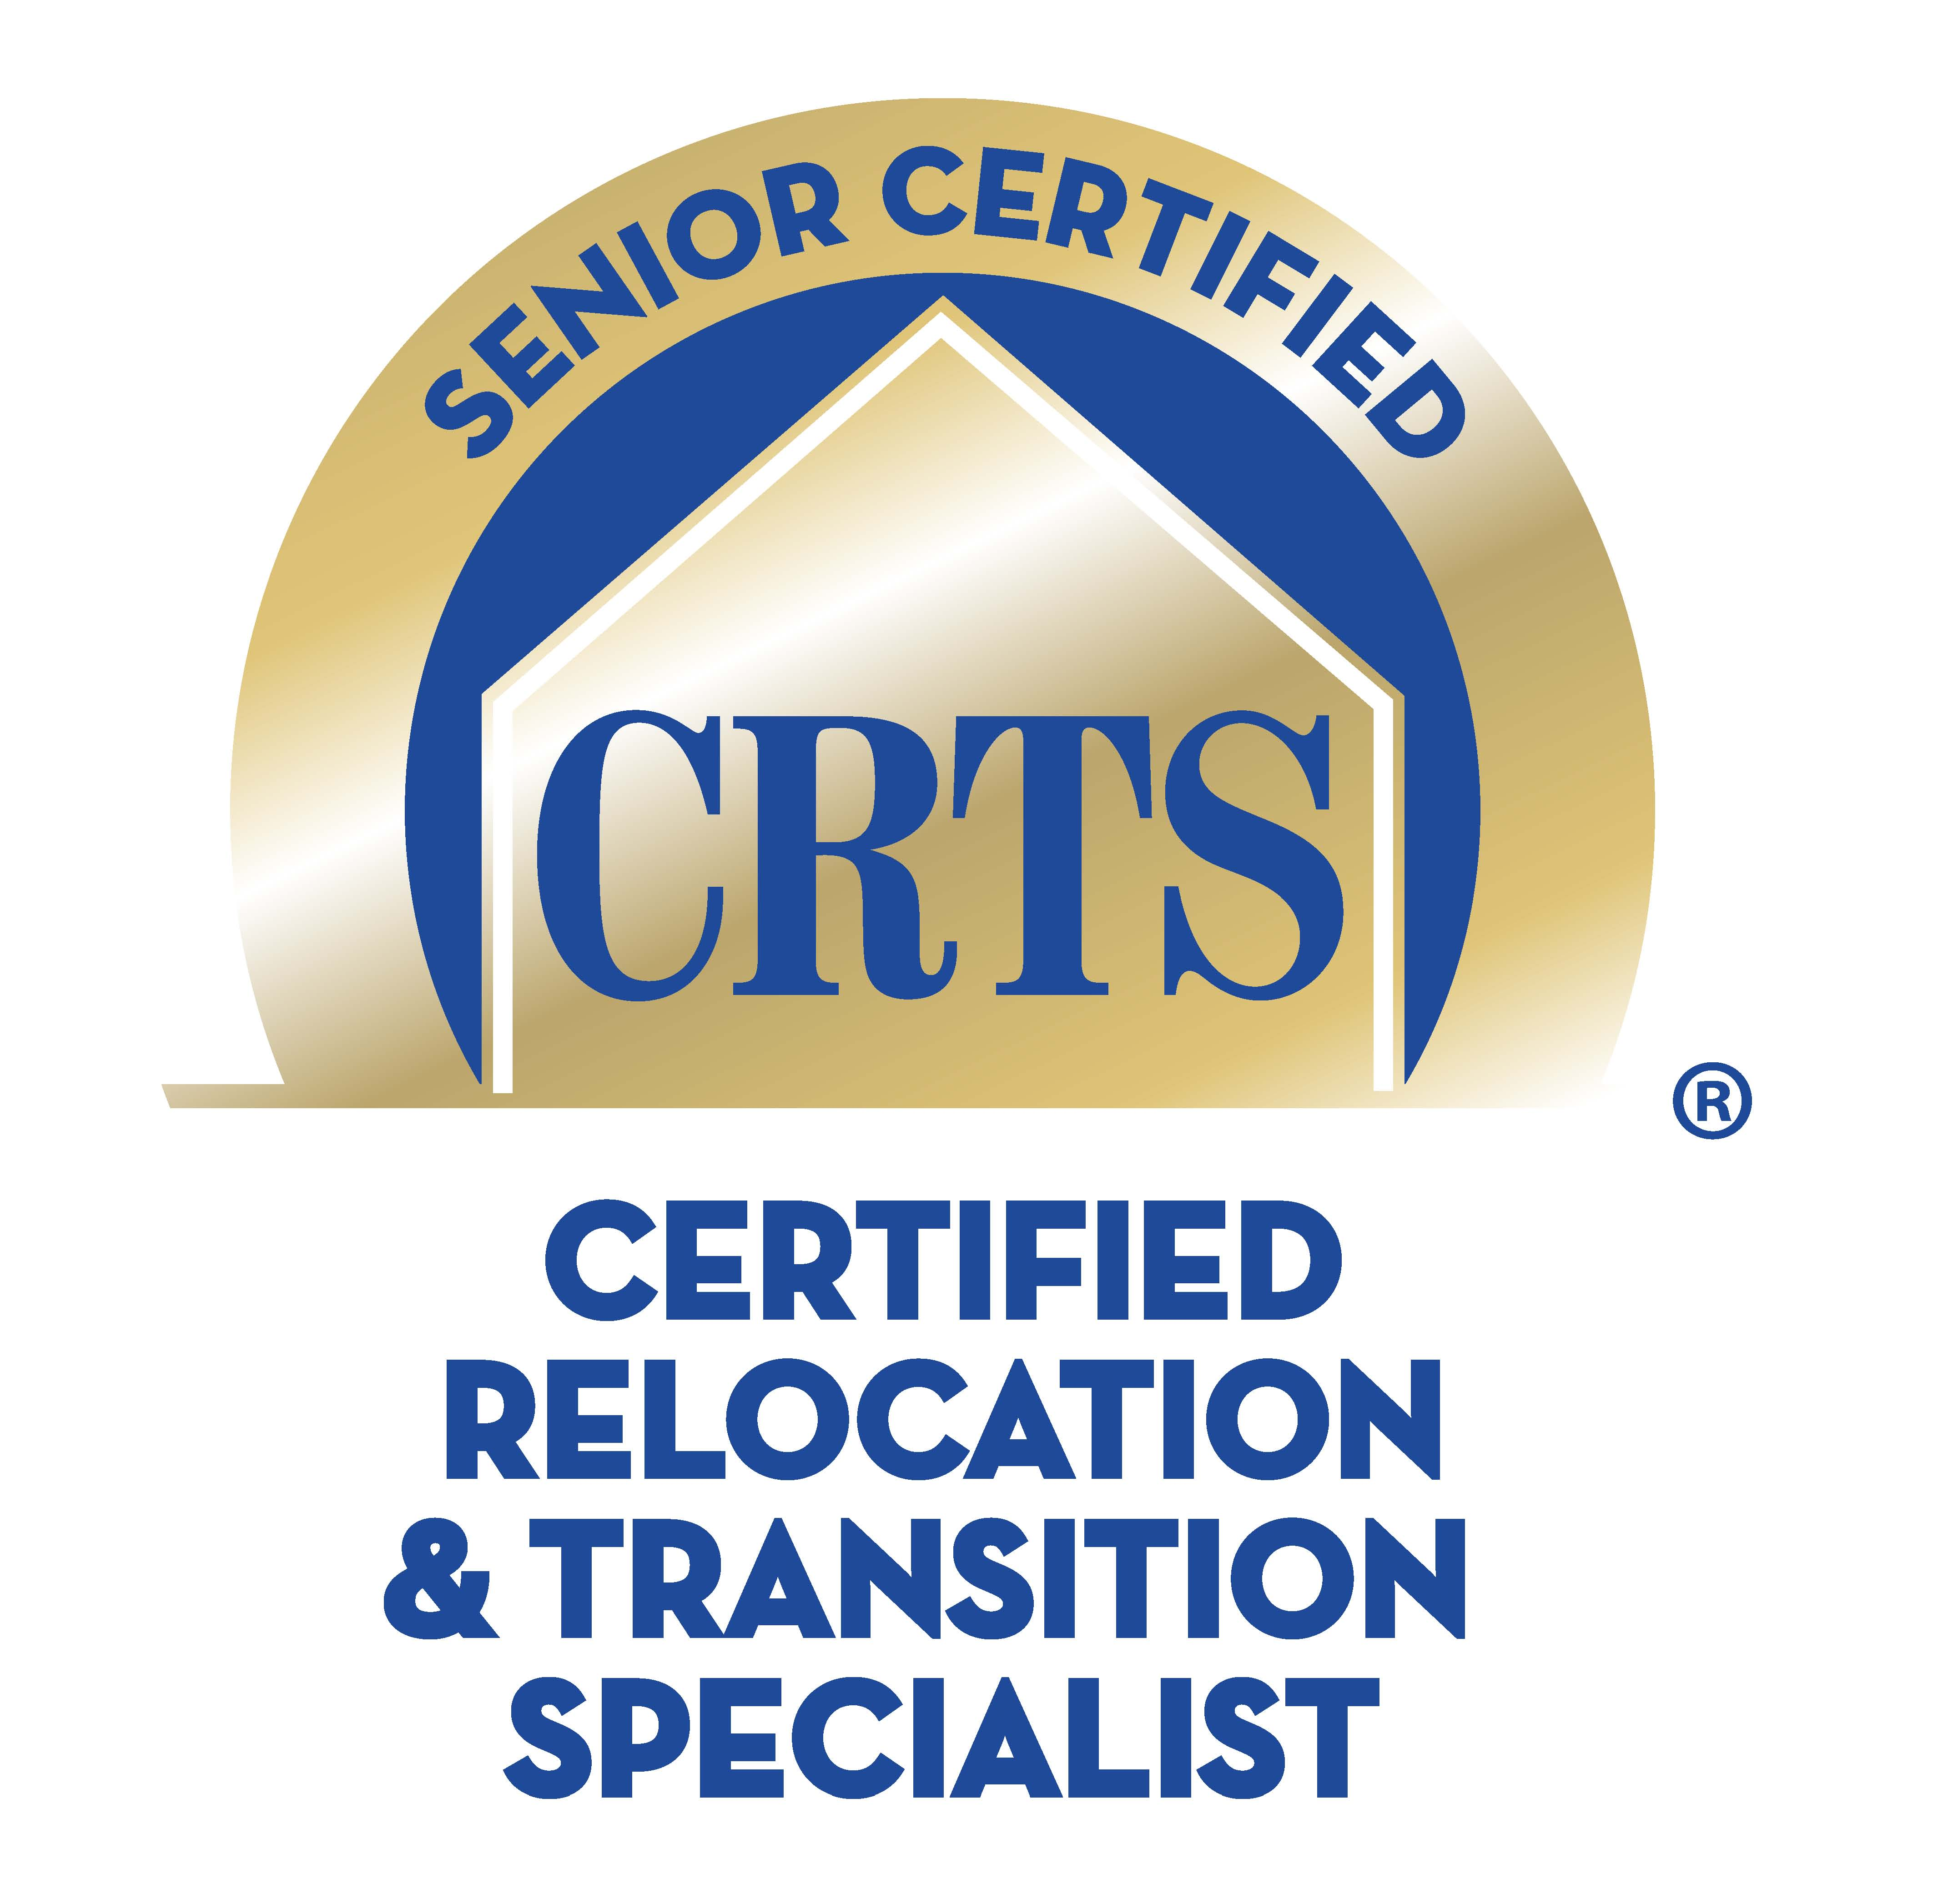 Certified Relocation Transition Specialist (CRTS)